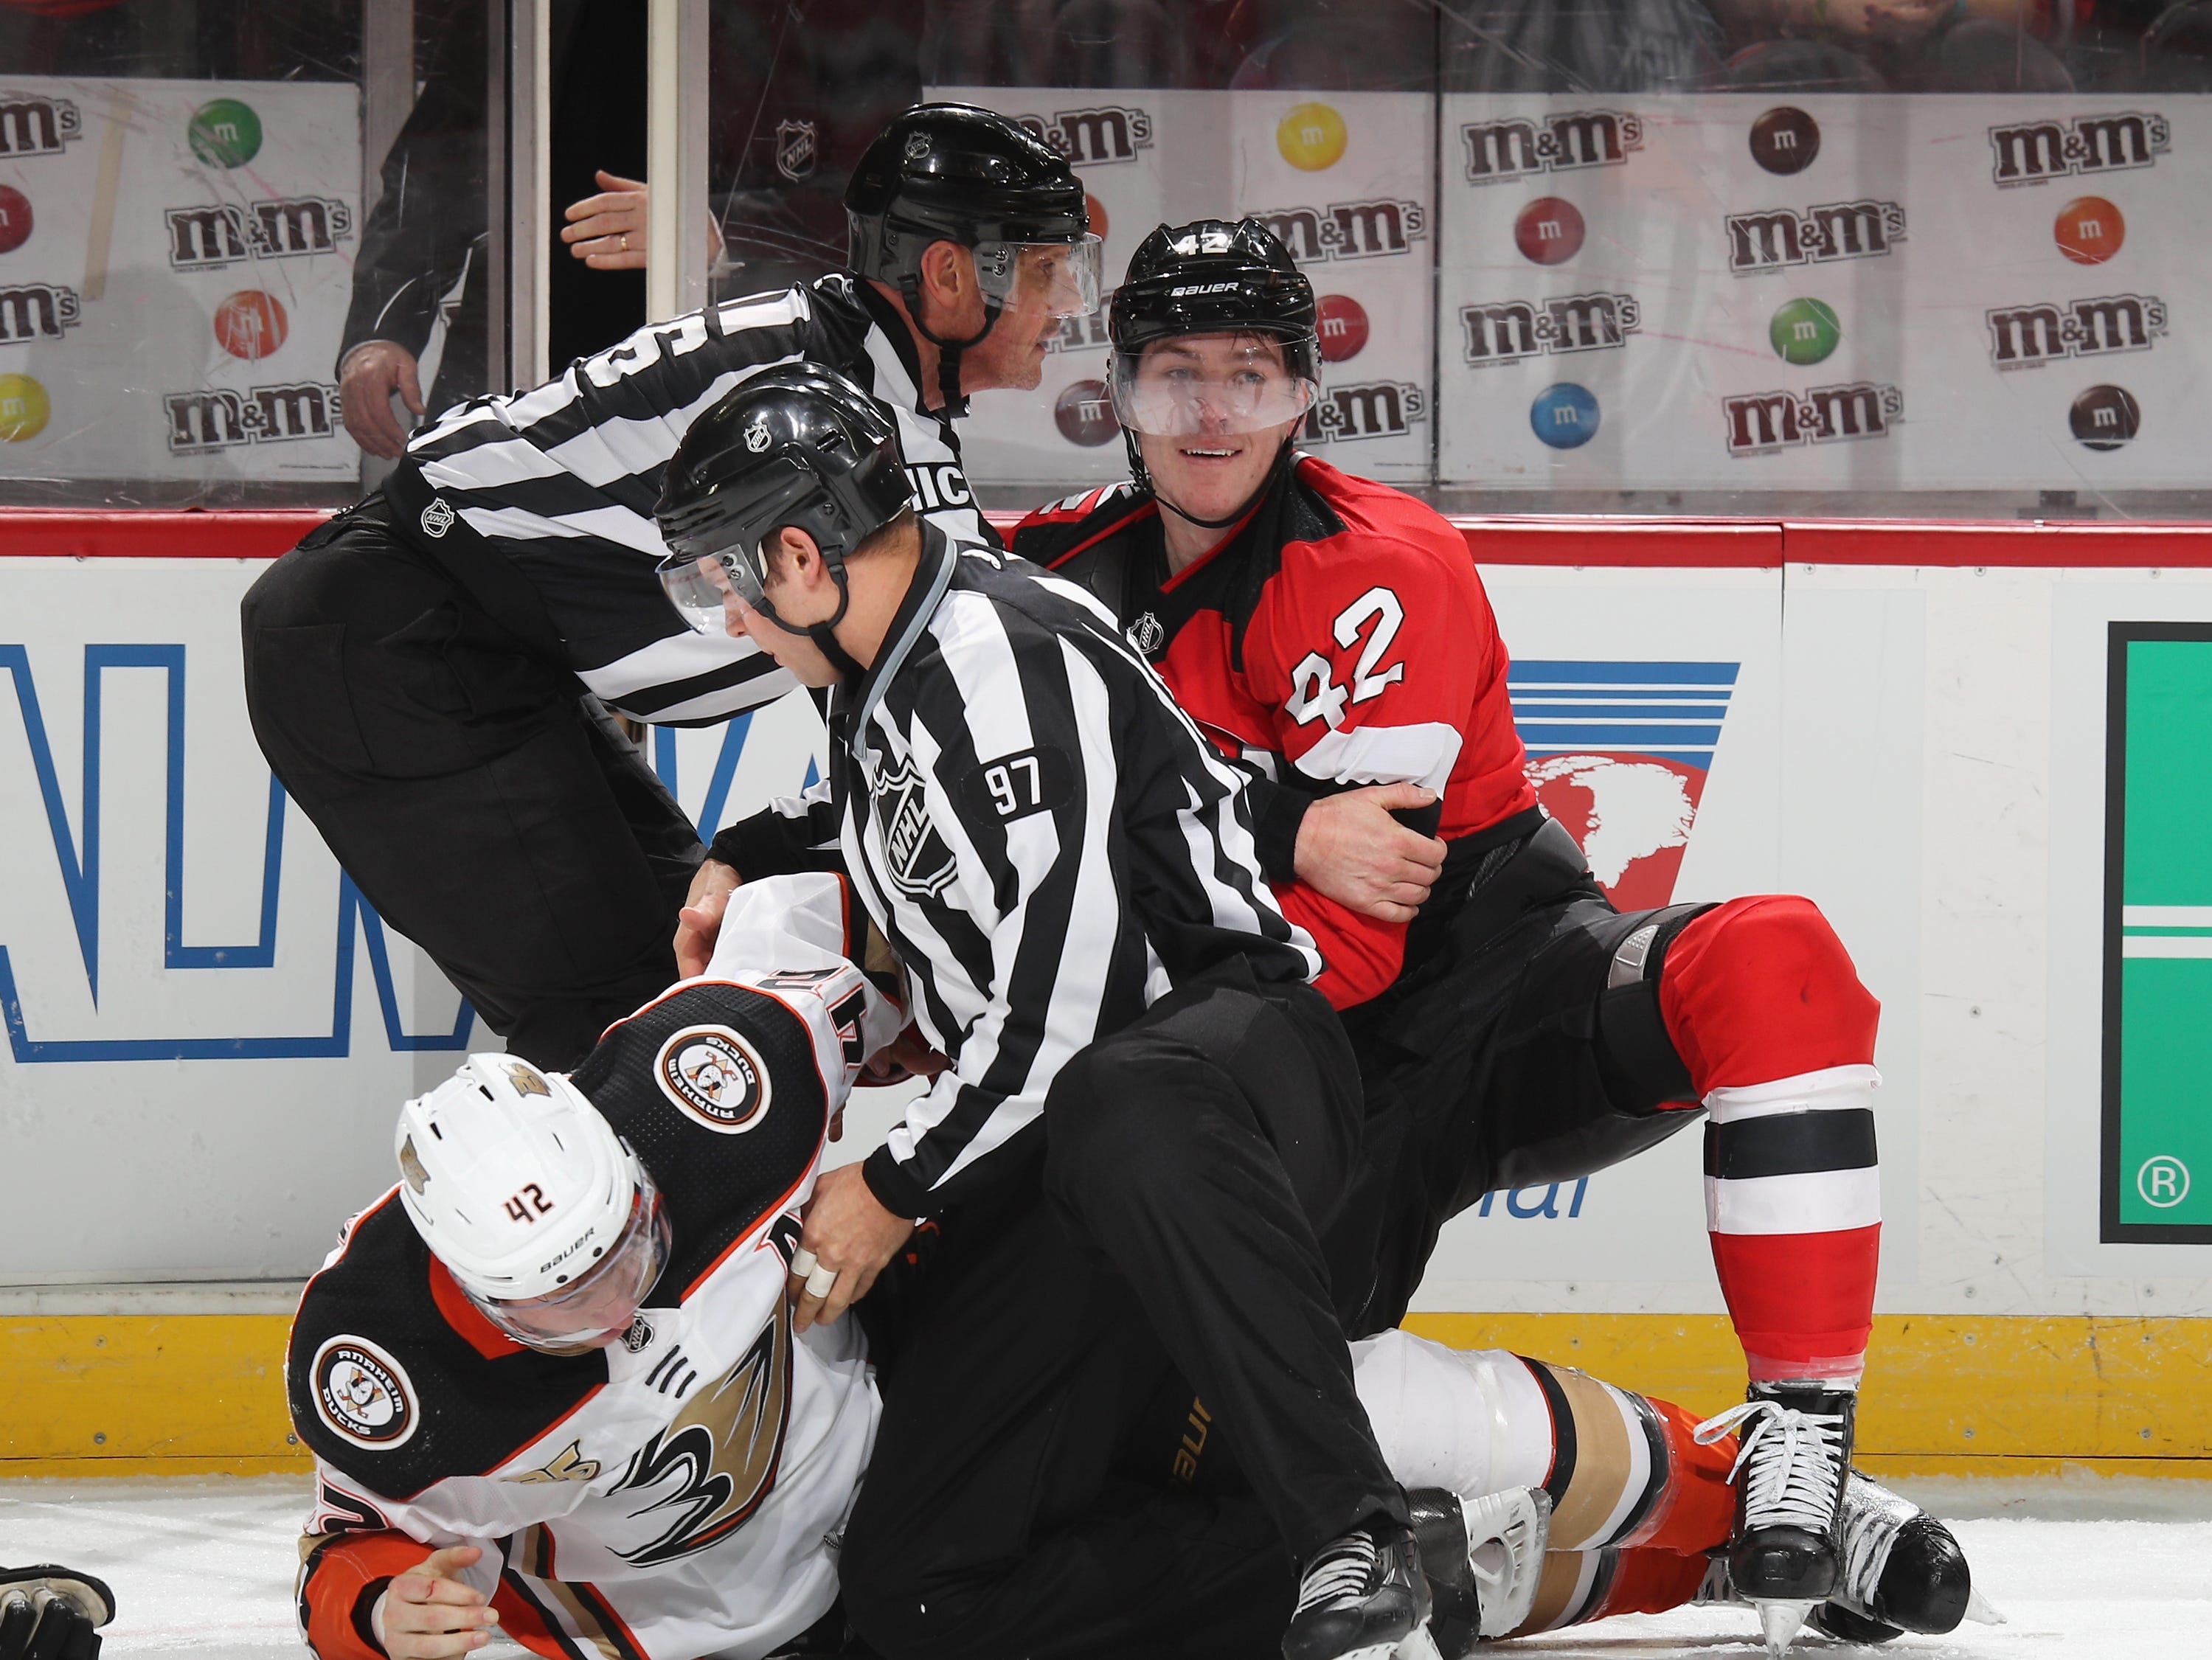 Jan. 19: New Jersey Devils' Nathan Bastian, right, vs. Anaheim Ducks' Josh Manson.